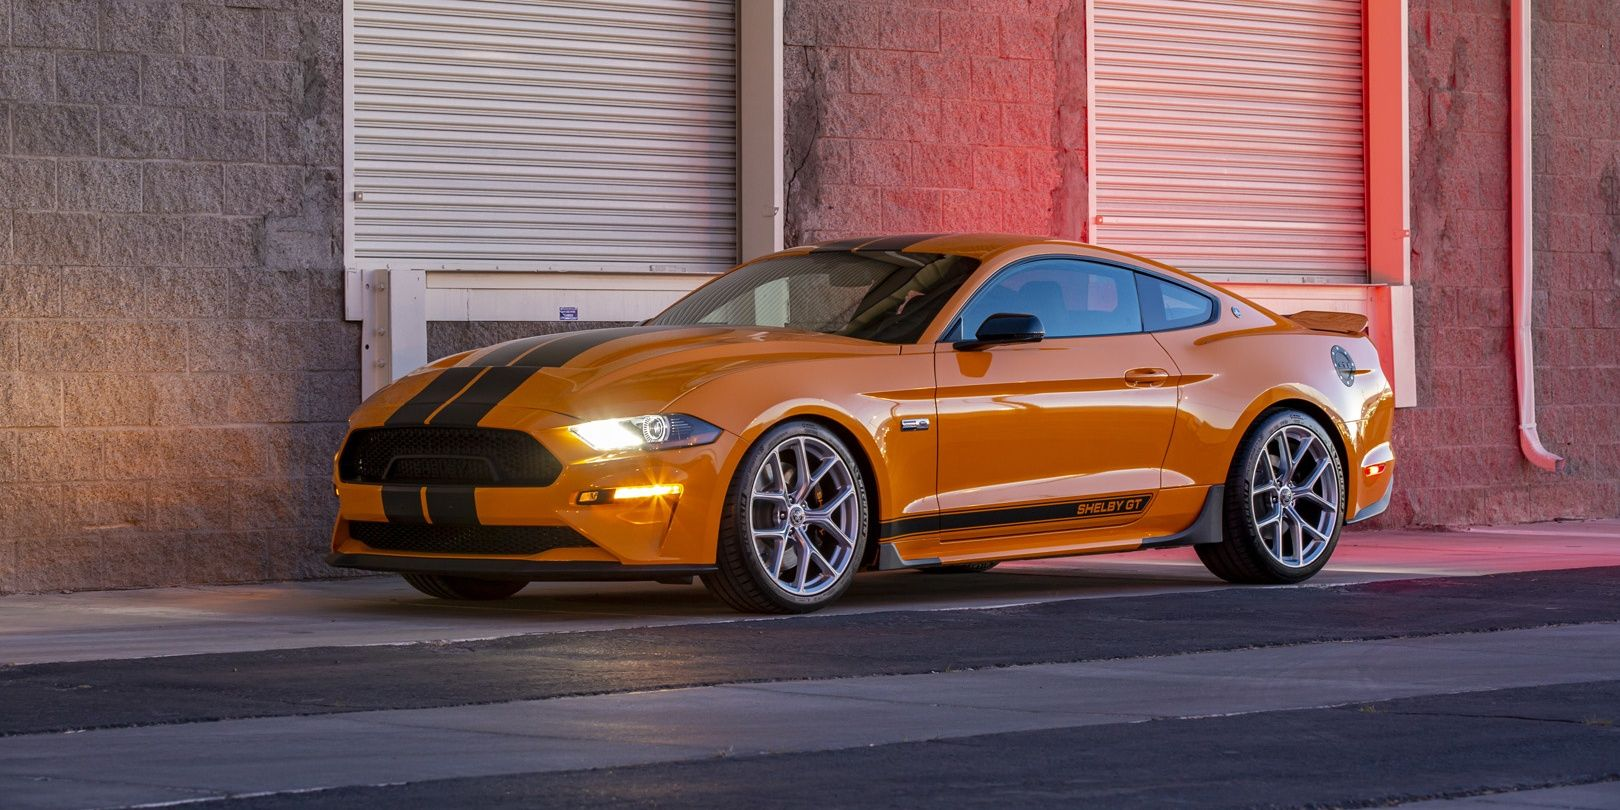 Here's How The New Ford Shelby GT Stands Out From Other Mustangs